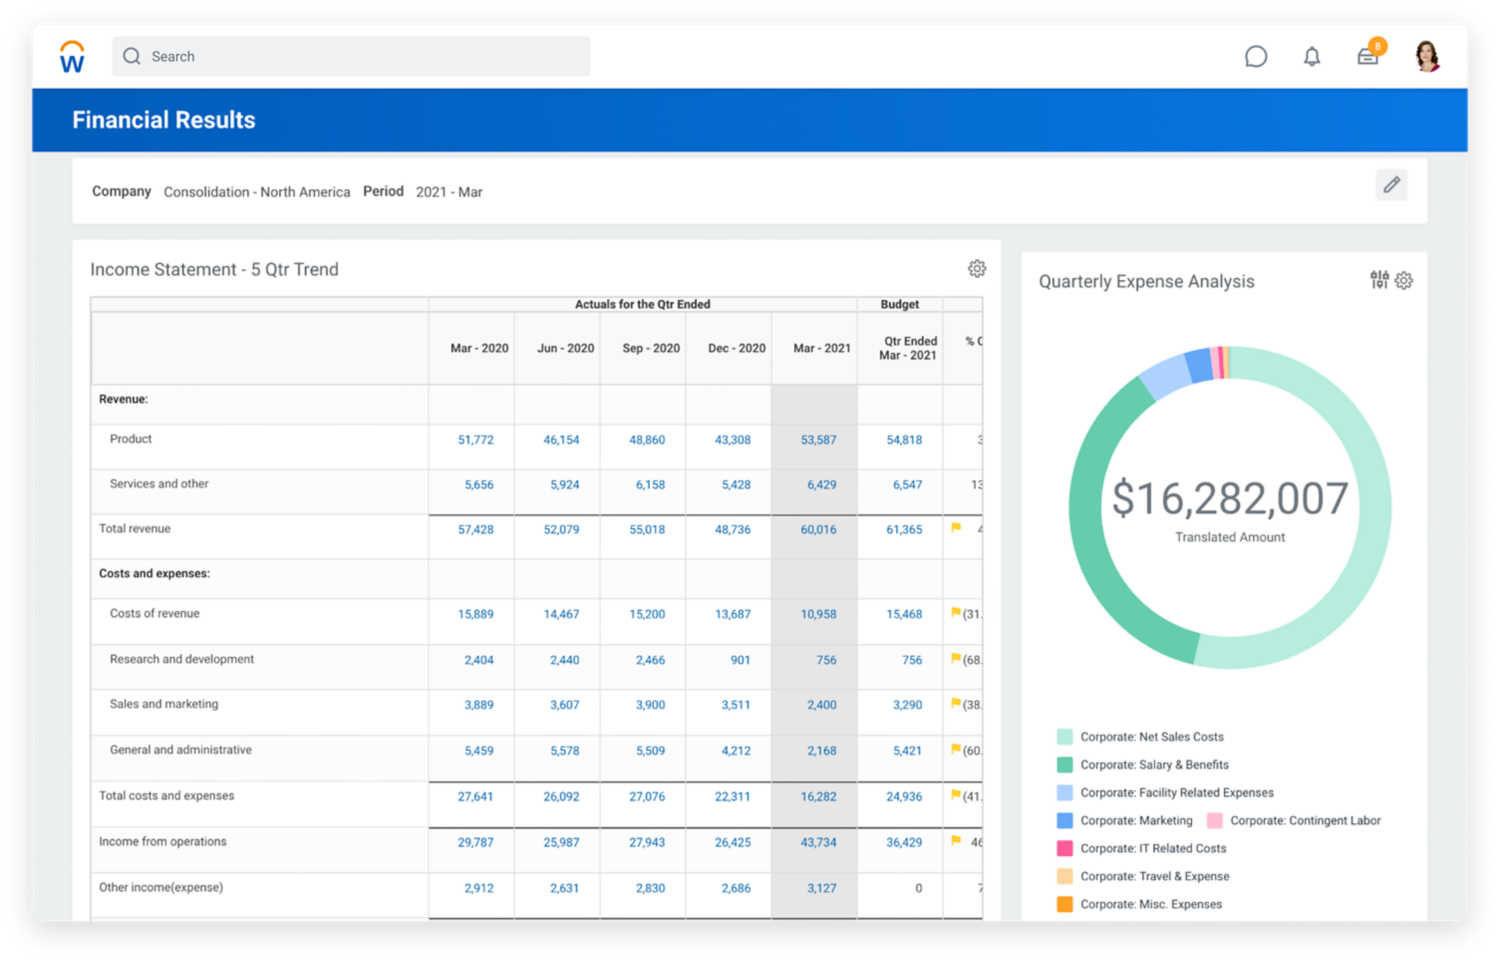 Financial accounting results dashboard showing income statement and quarterly expense analysis.